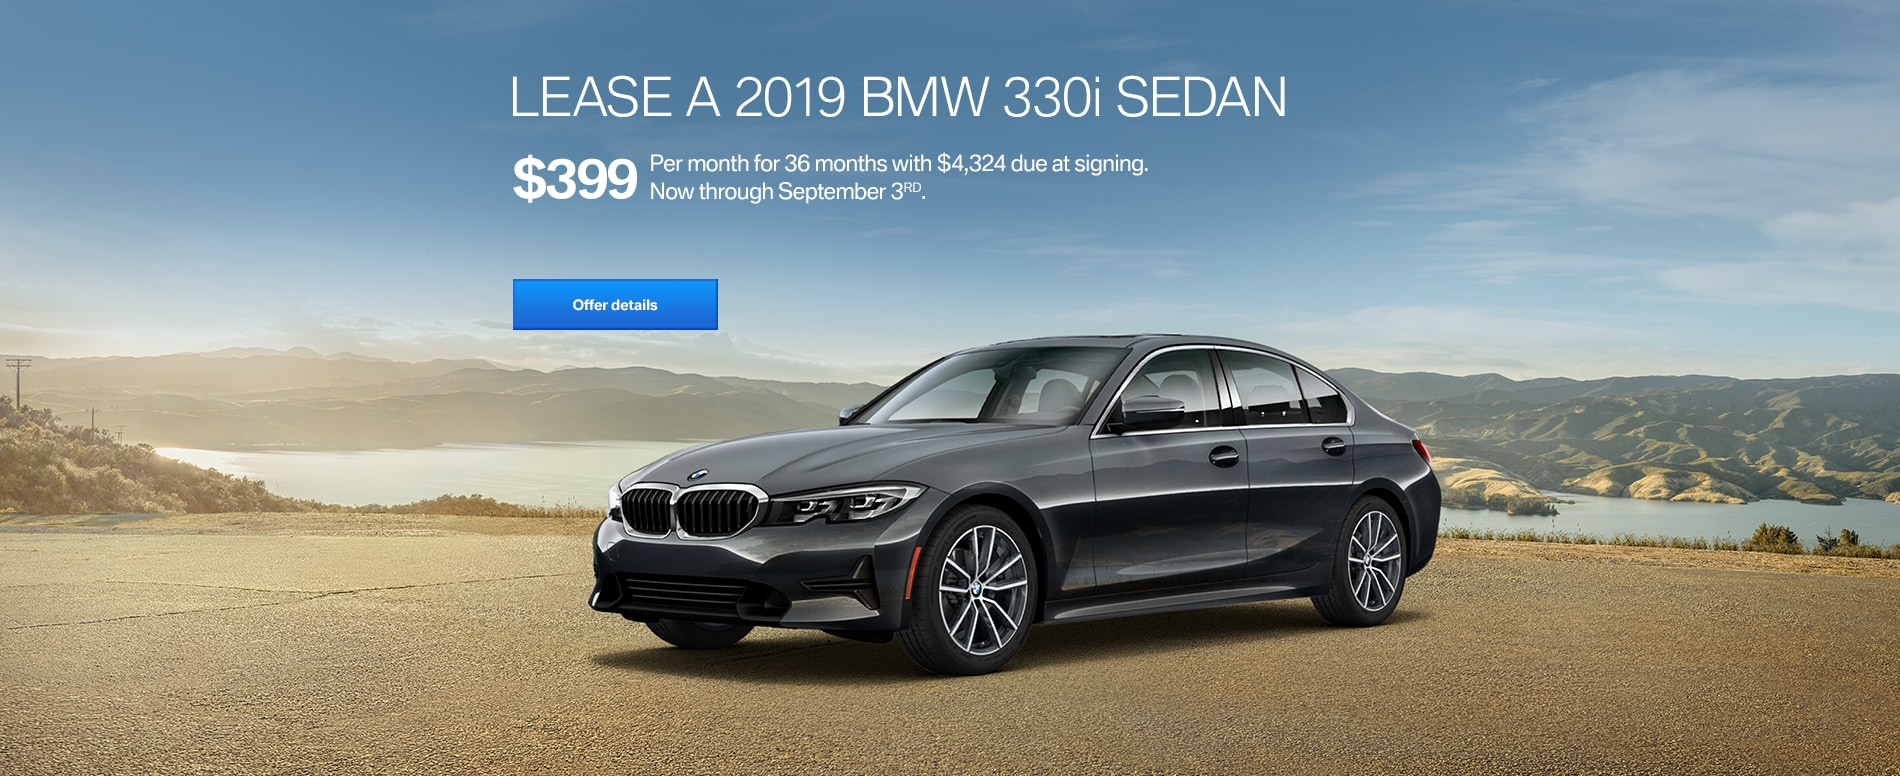 Bmw Dealership Near Me >> New Pre Owned Bmw Cars Los Angeles Ca Bmw Dealership